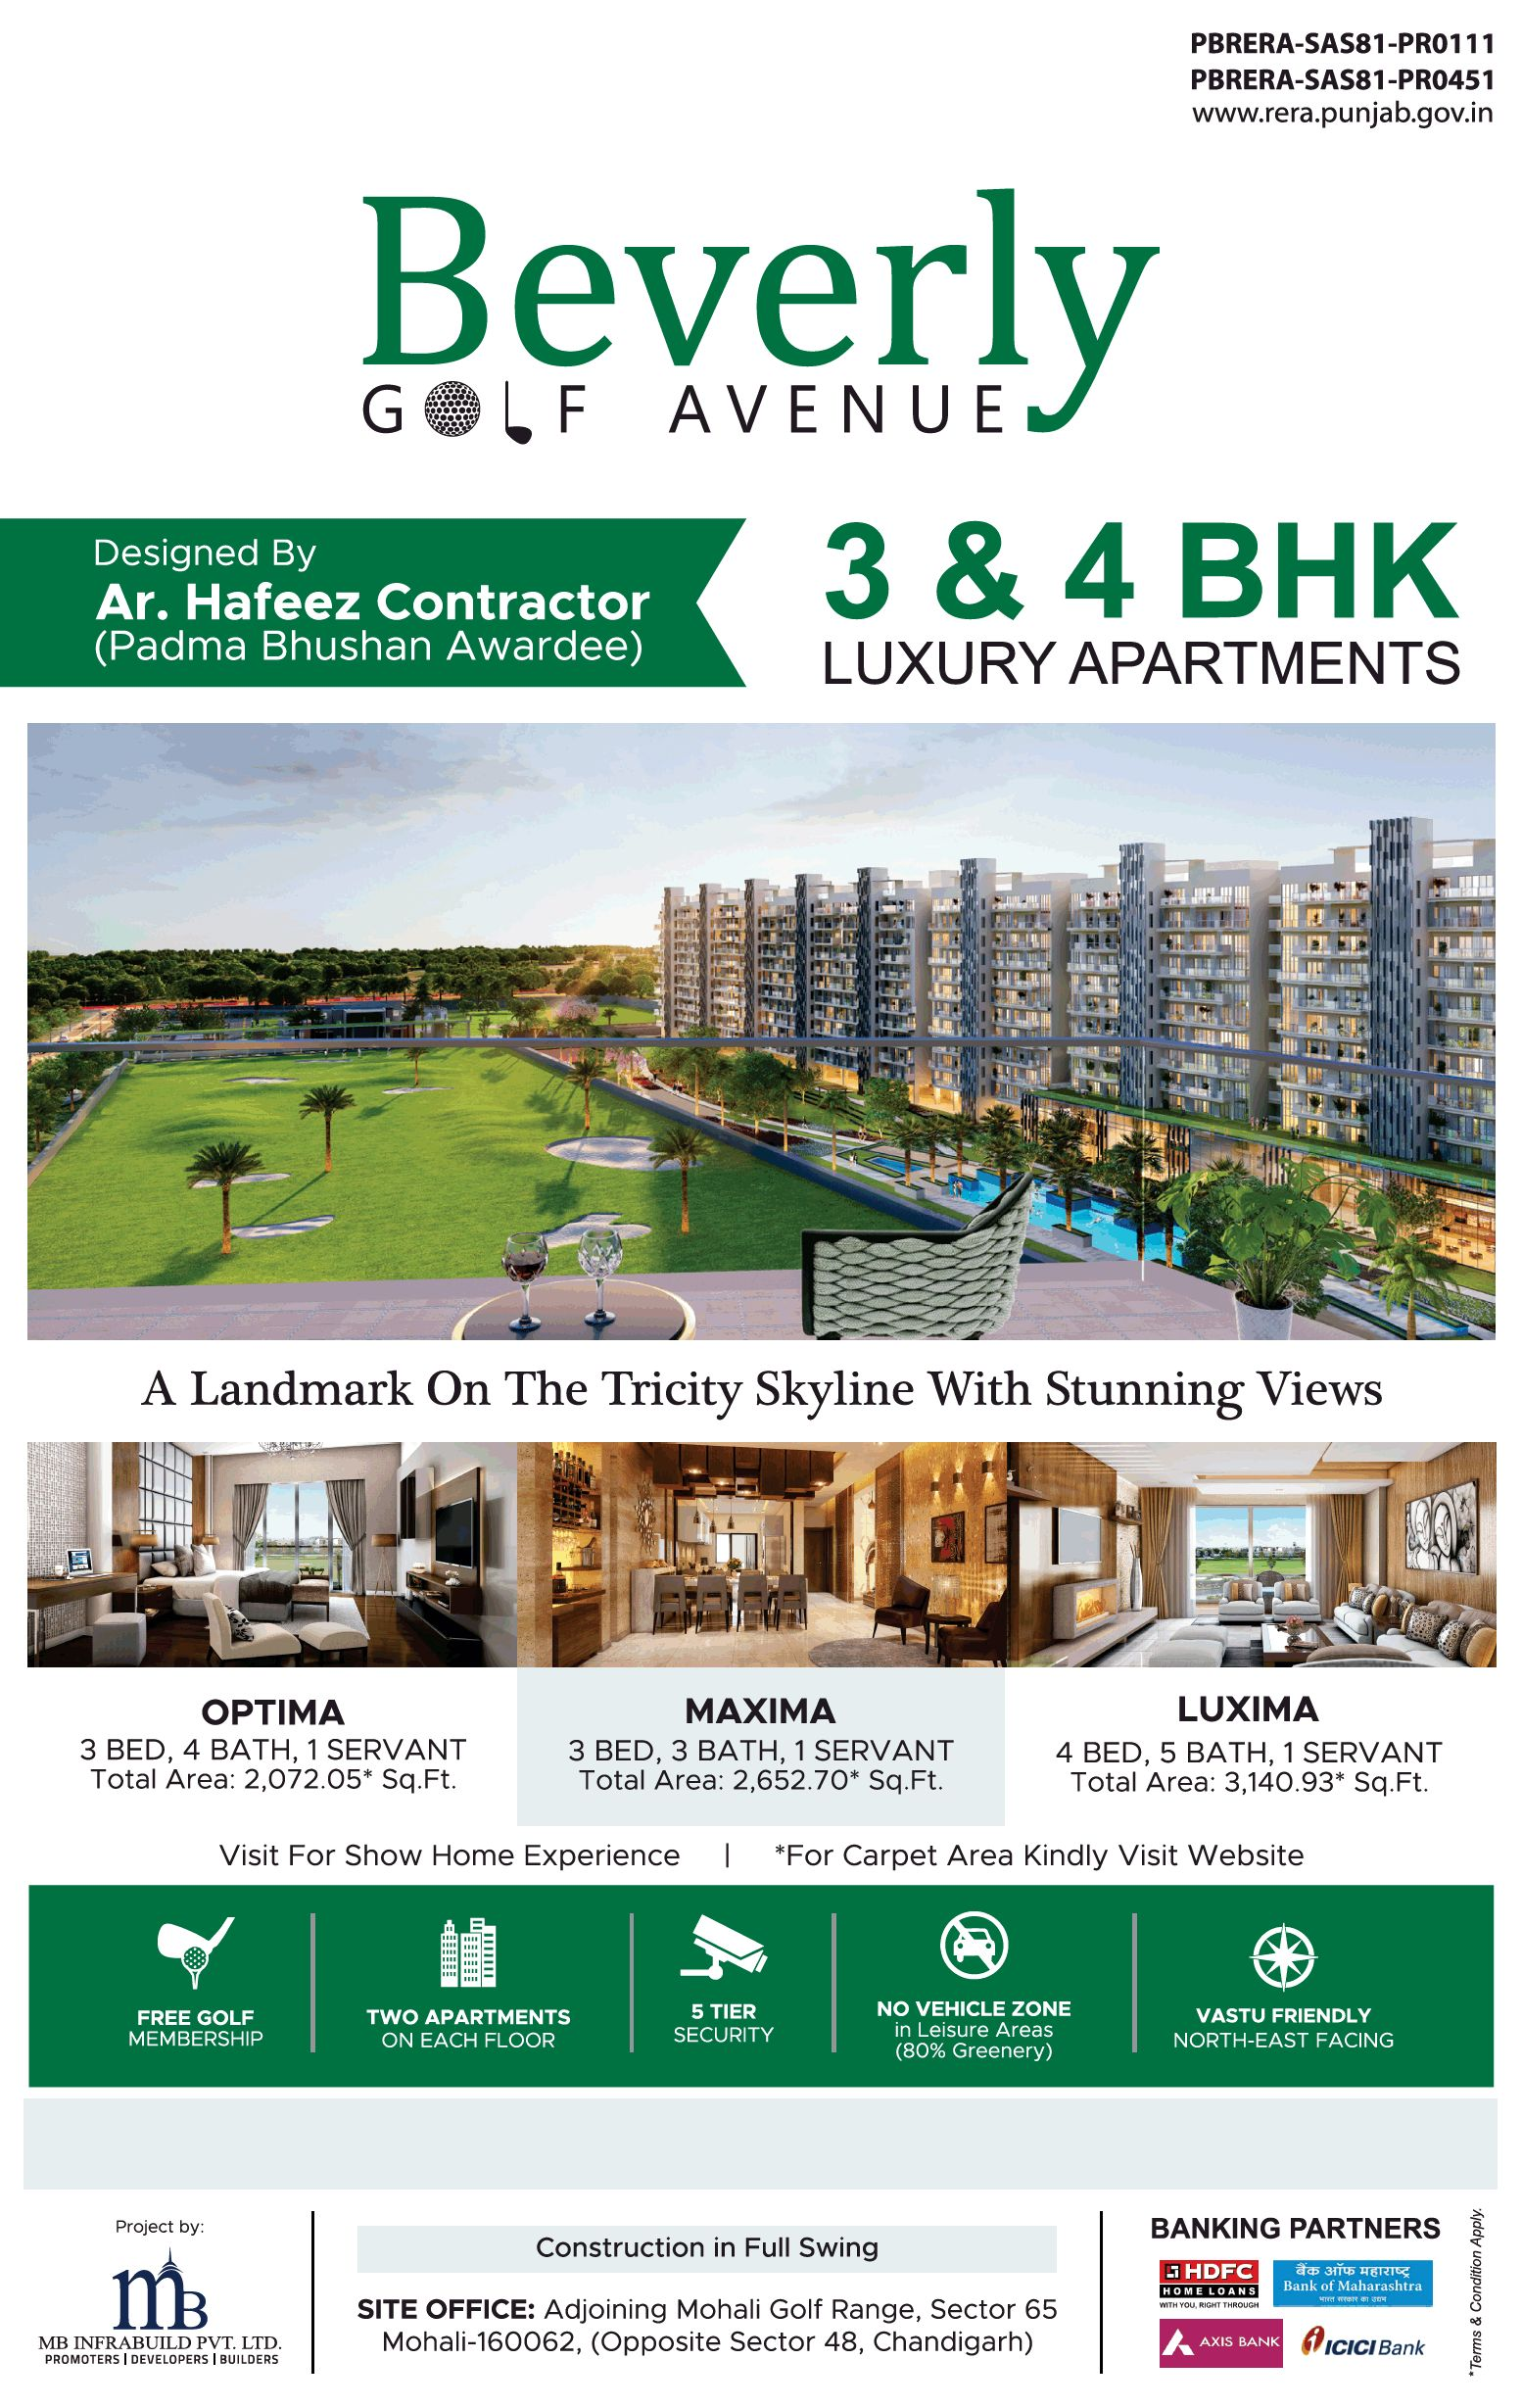 A landmark on the tricity skyline with stunning views at MB Beverly Golf Avenue Mohali